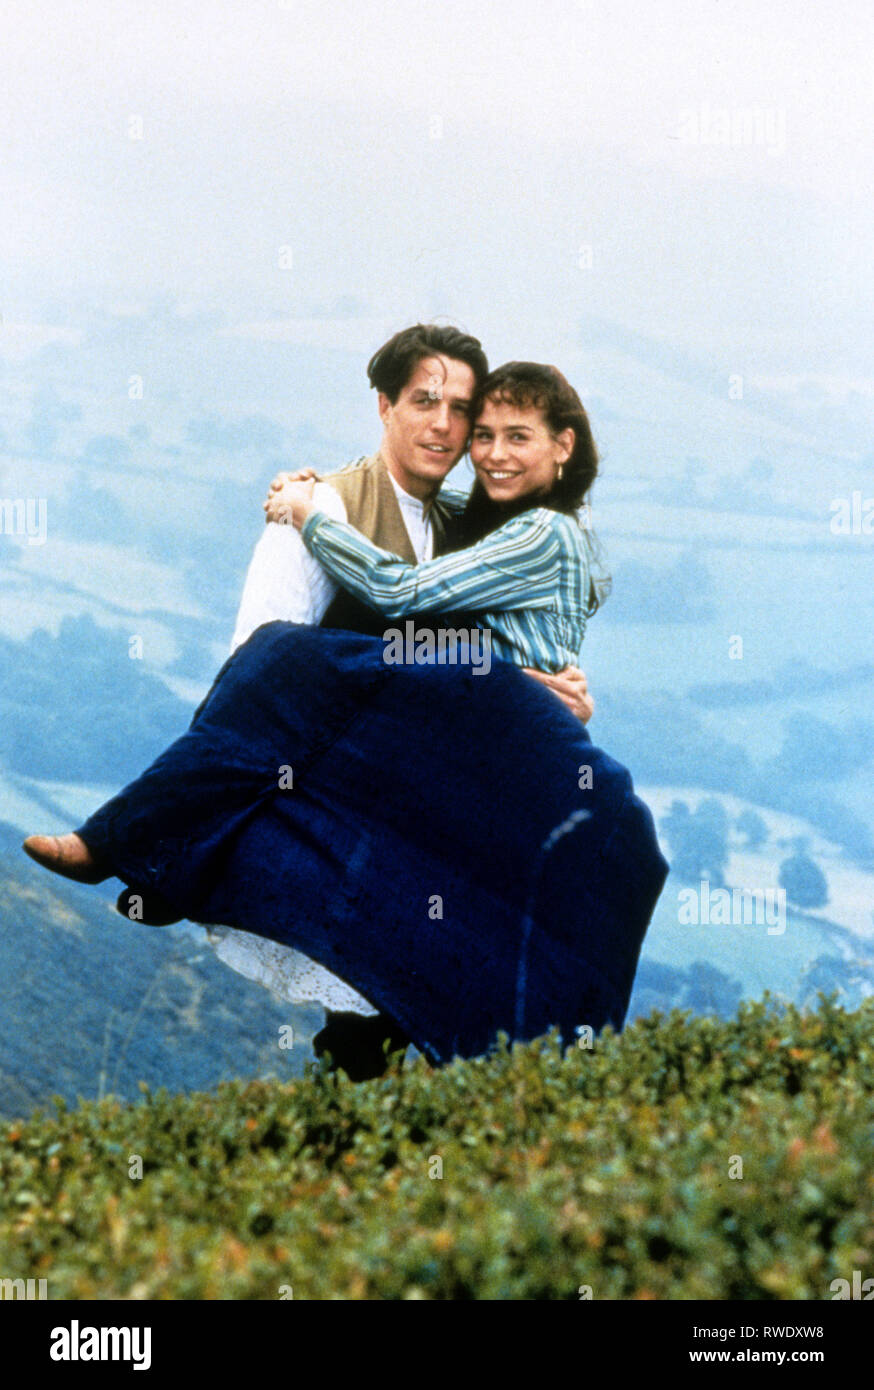 GRANT,FITZGERALD, THE ENGLISHMAN WHO WENT UP A HILL BUT CAME DOWN A MOUNTAIN, 1995 - Stock Image